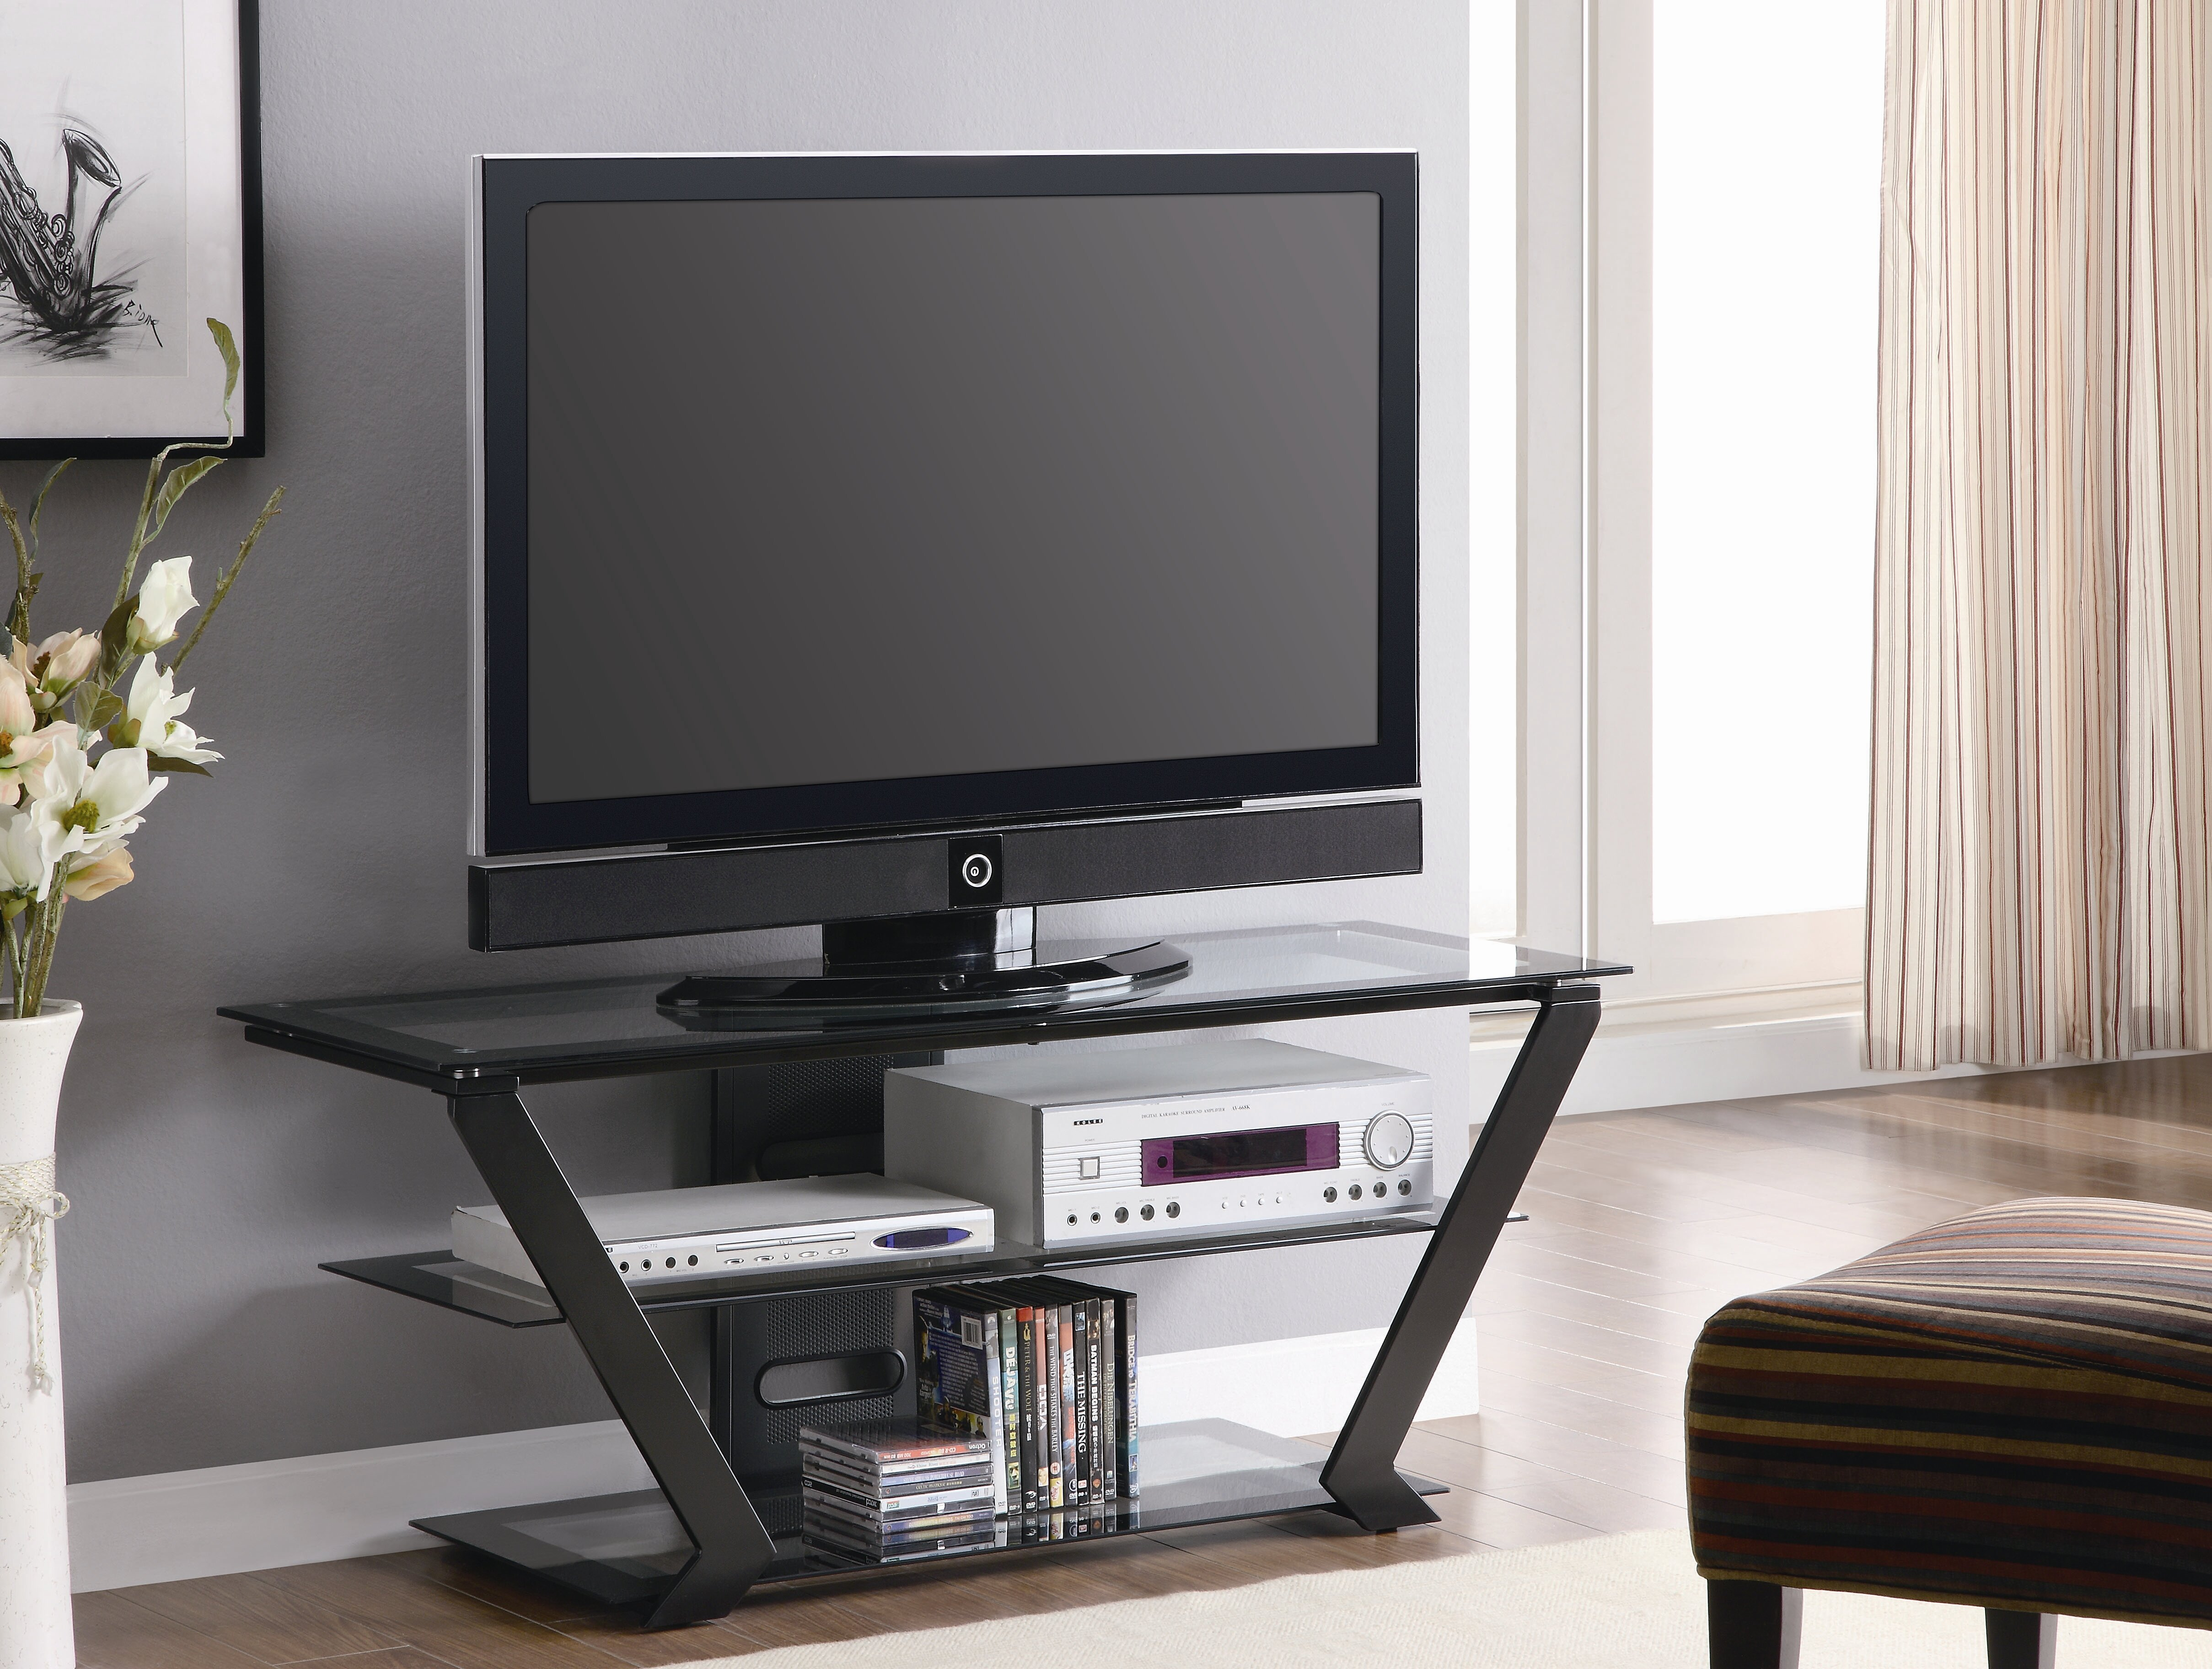 Wildon Home Primera Tv Stand For Tvs Up To 54 Reviews Wayfair